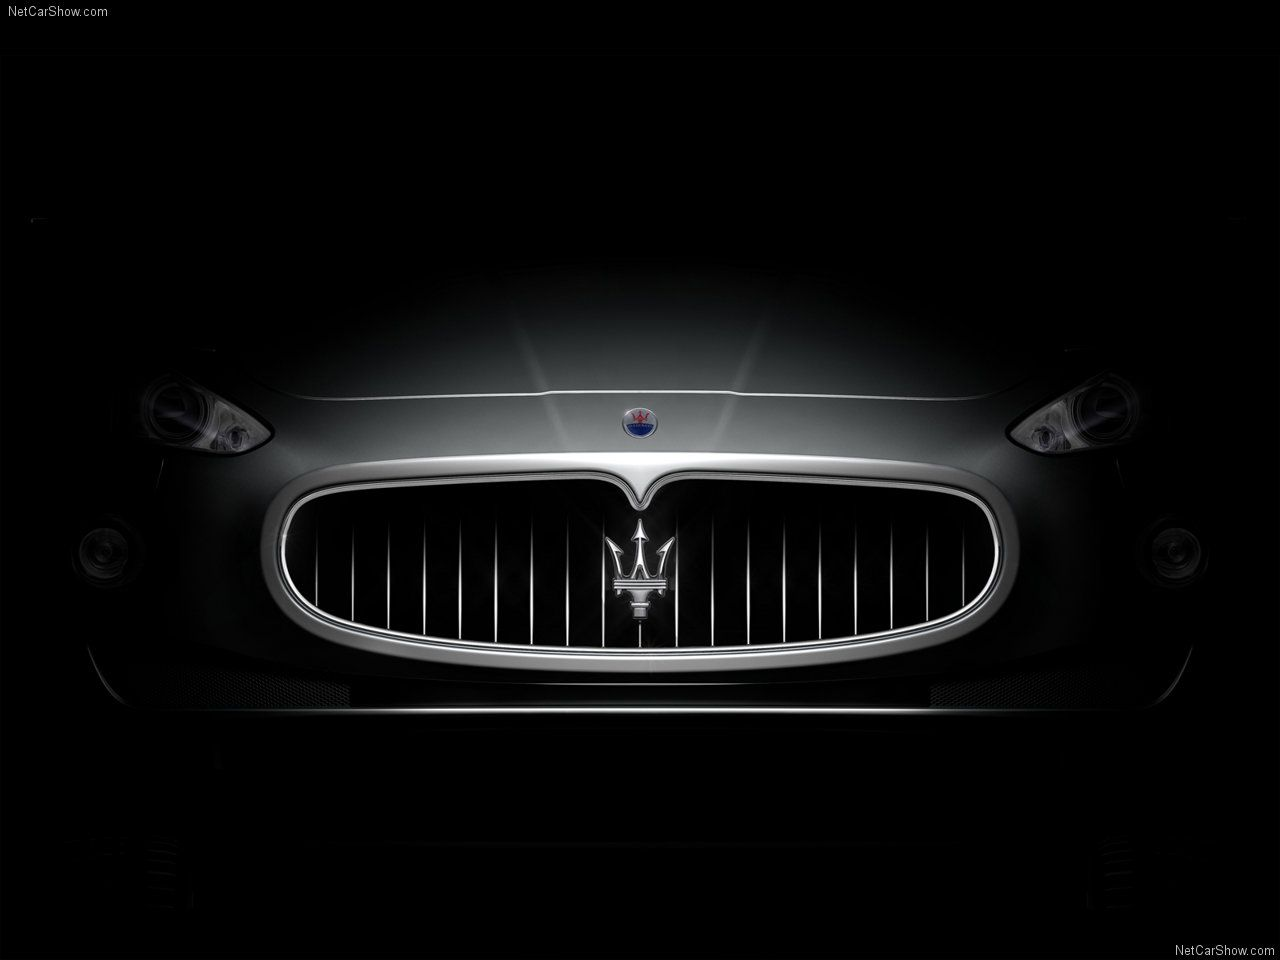 Maserati Logo In Grill Wallpaper Hd Desktop Robert King